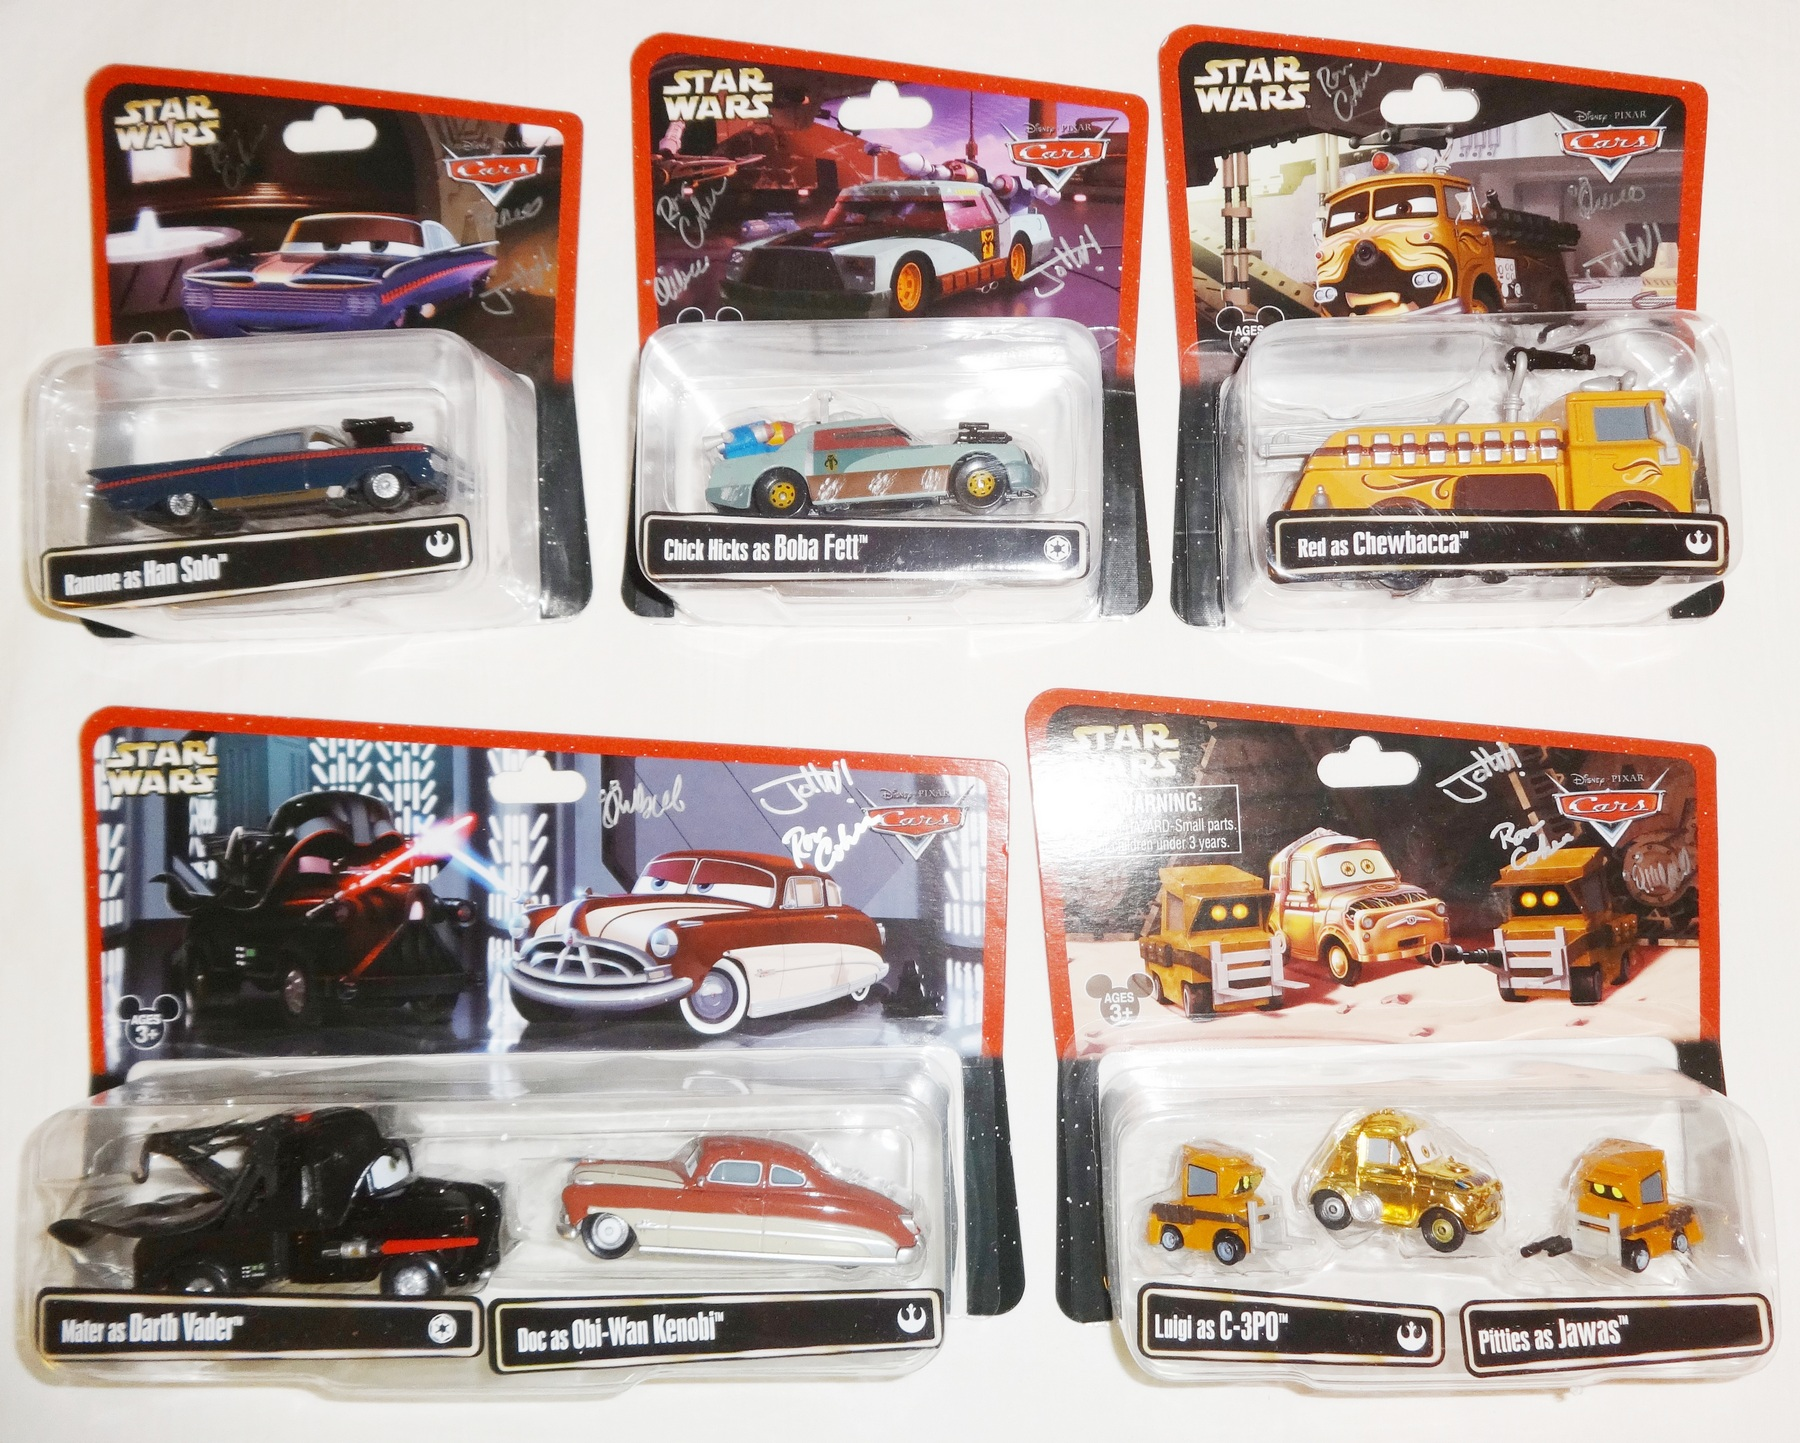 Triple Autographed Disney Pixar Cars as Star Wars Characters Series 2